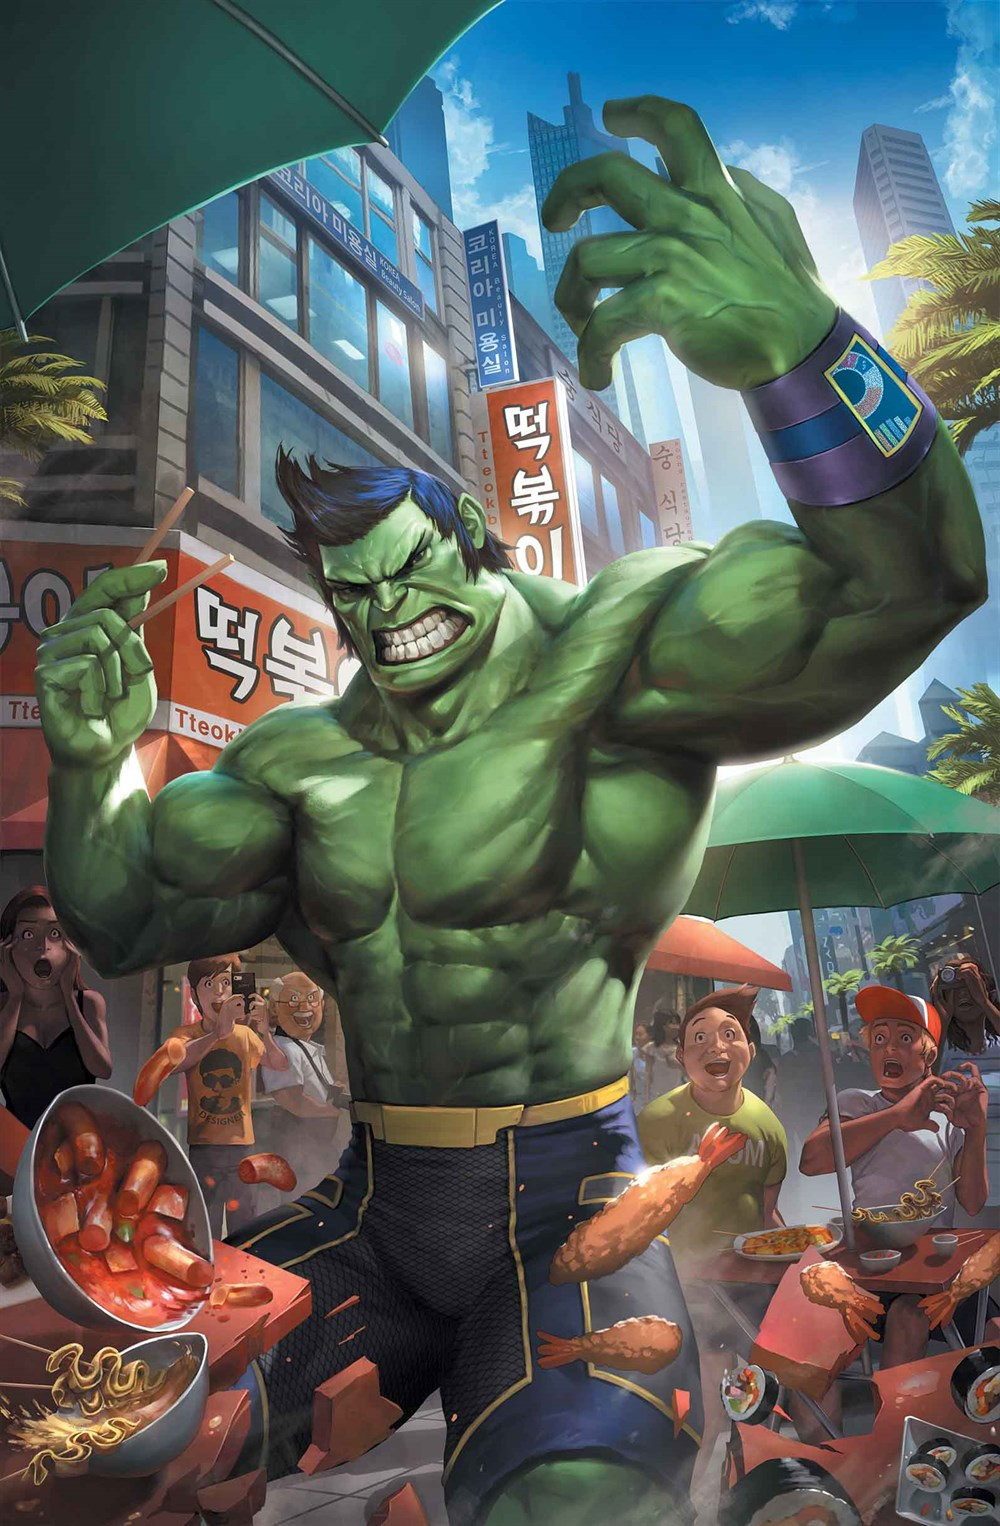 THE TOTALLY AWESOME HULK #1 CHEOL VARIANT